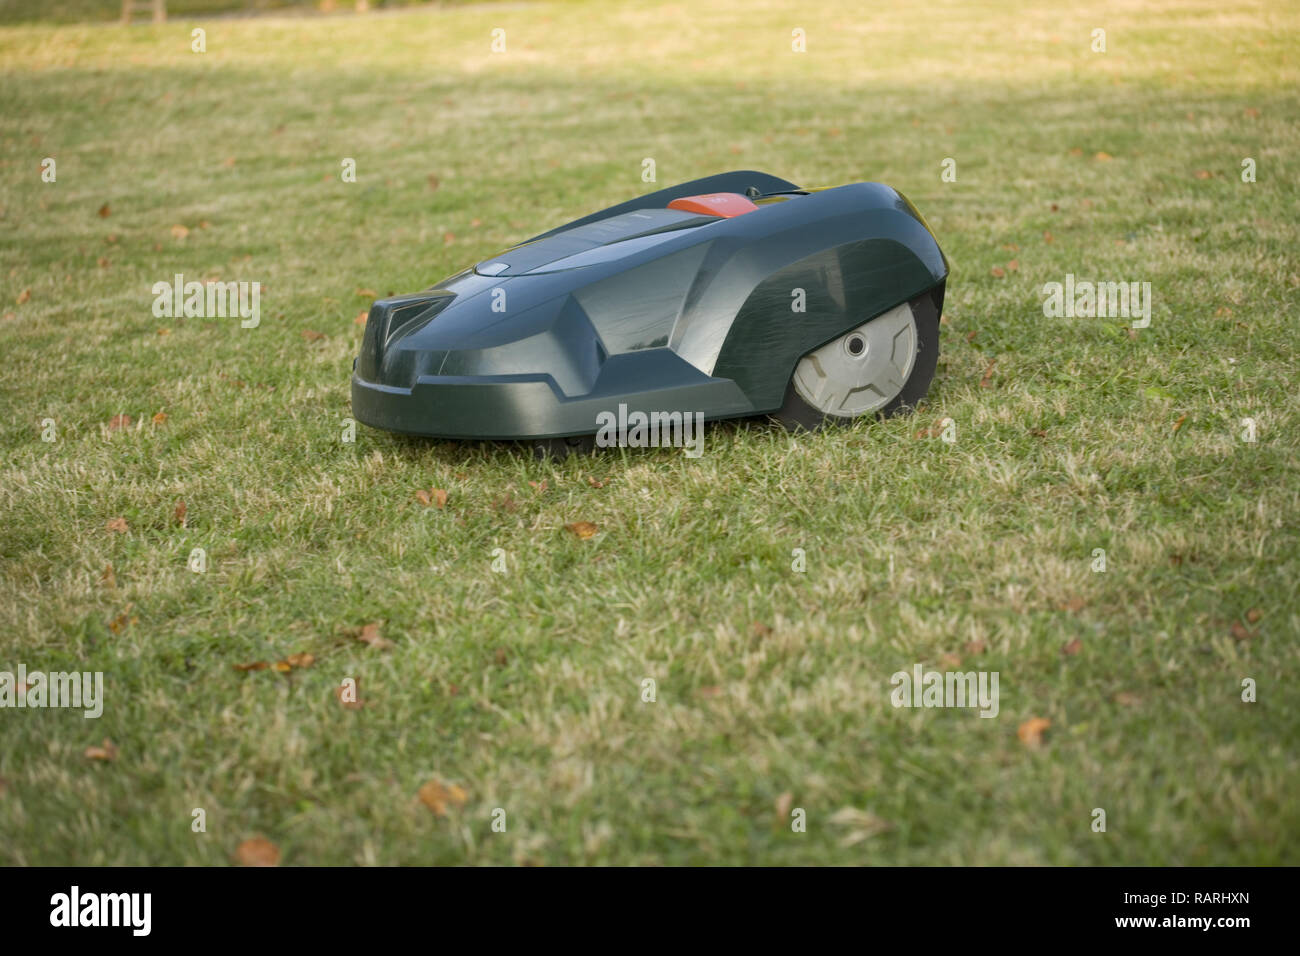 Automatic robot lawn mower cutting grass side view Stock Photo